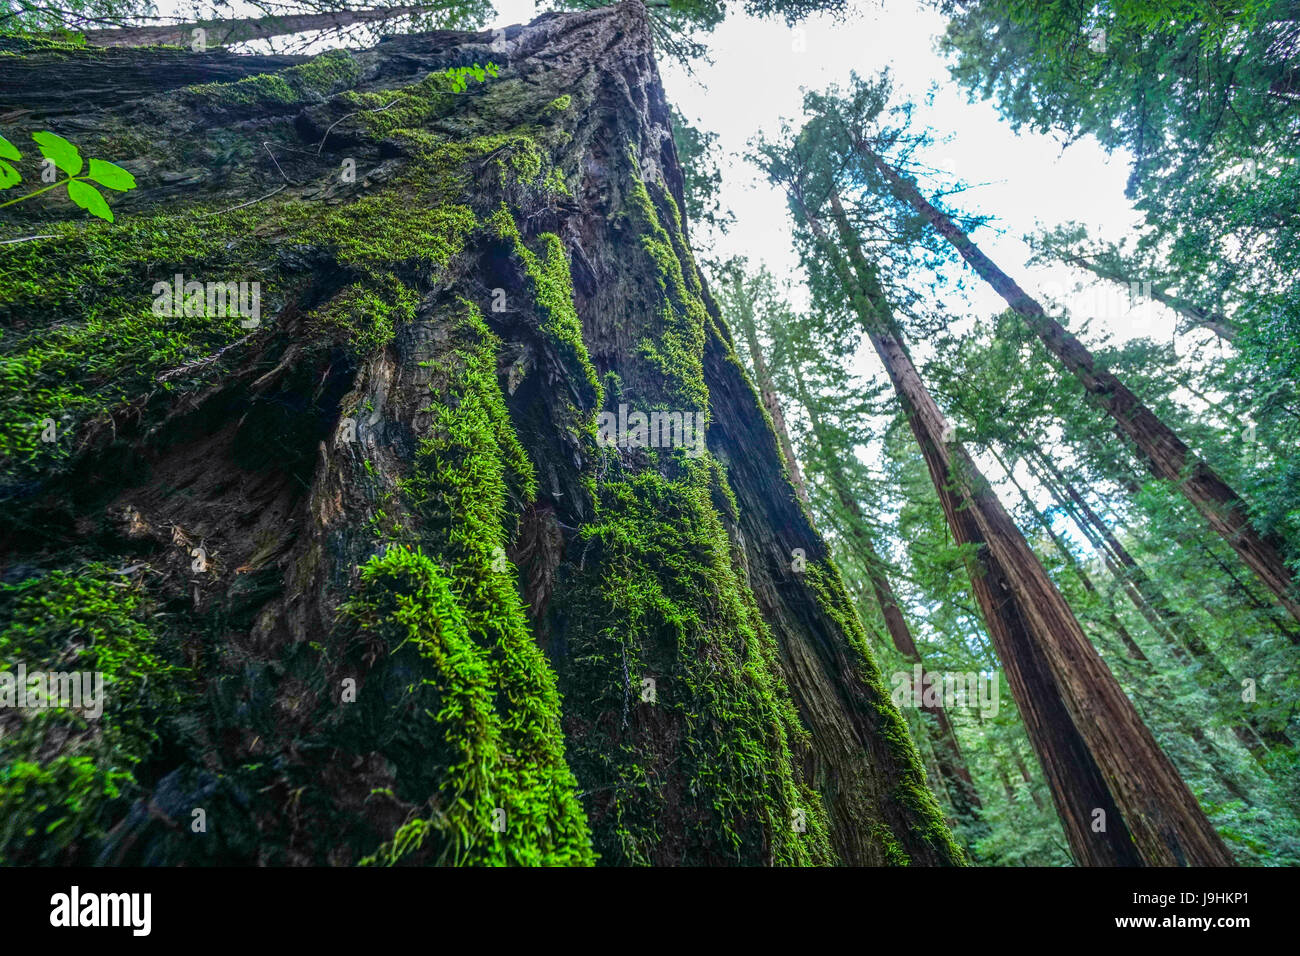 Giant Redwood Trees in the Redwoods National Park - Stock Image